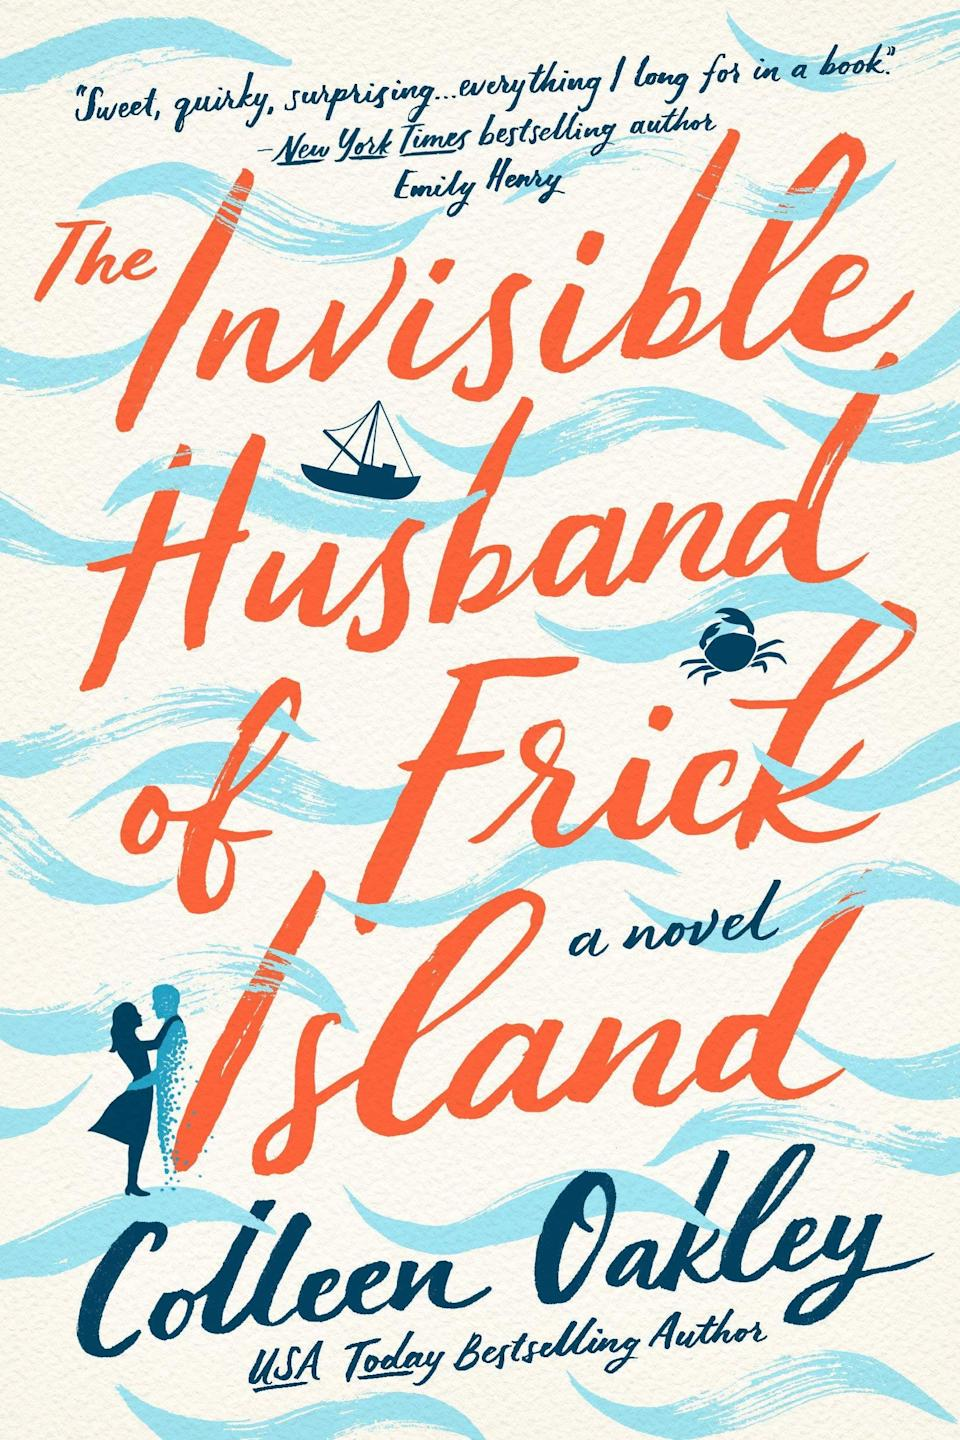 <p>Colleen Oakley's <span><strong>The Invisible Husband of Frick Island</strong></span> is the sort of book you want to live in thanks to its eccentric and lovable cast of characters. When Piper Parrish's husband died in a boating accident, her grief was so overwhelming, she continued on with her life as if her husband had never died. And the people of Frick Island followed suit. But with an ambitious journalist nosing around their small community, Piper's life, as well as the town's commitment to caring for the widow, may very well be upended. </p> <p><em>Out May 25</em></p>